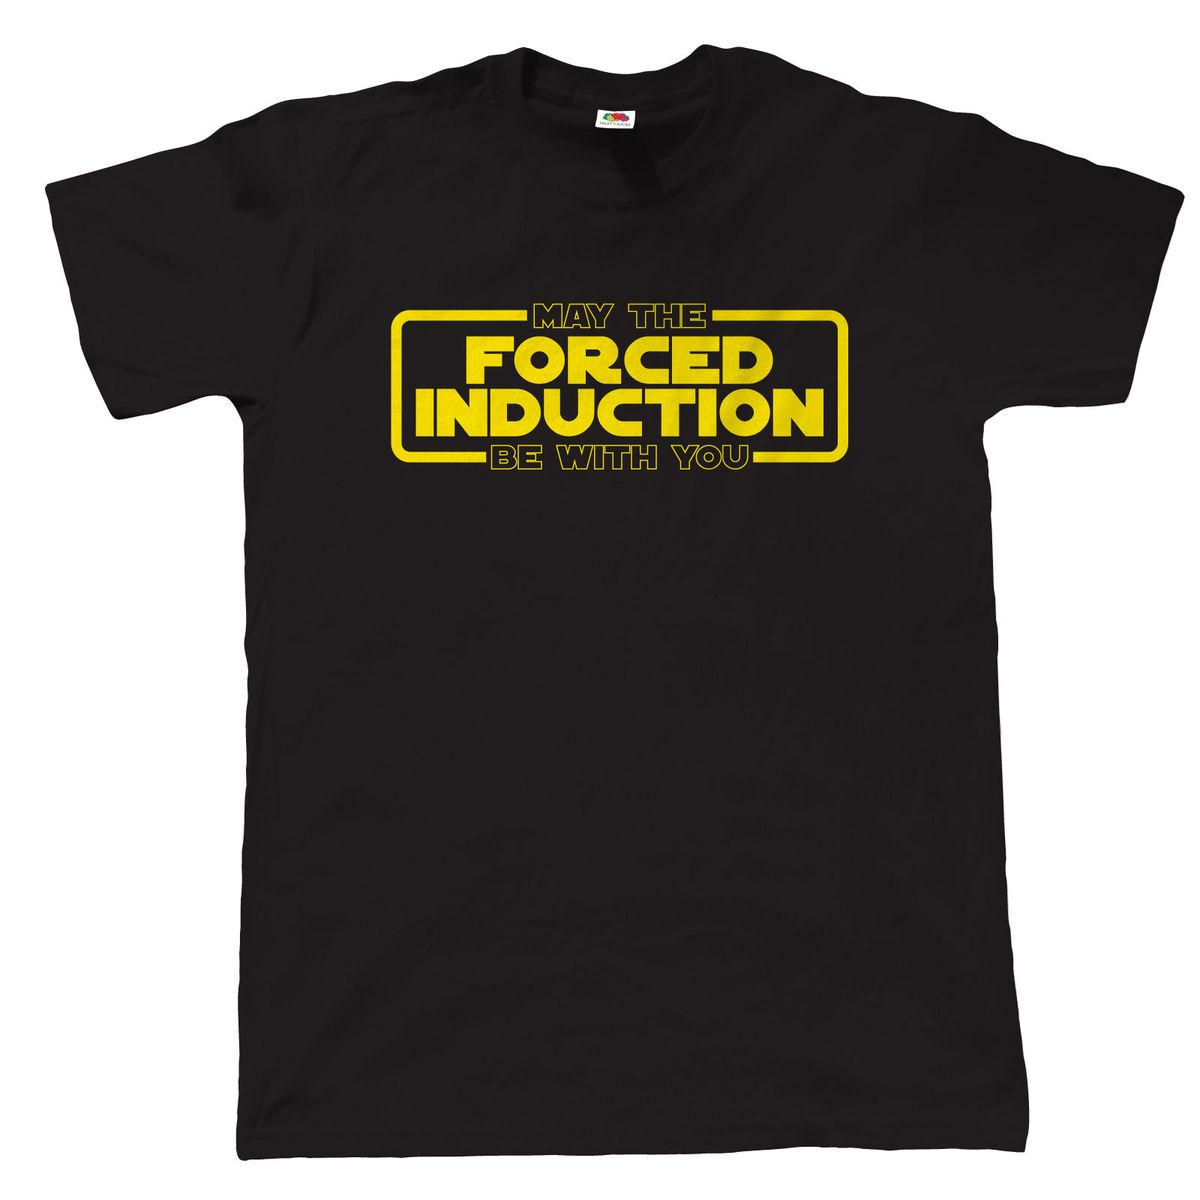 May The Gezwungen Induktion Be with You T-Shirt - Turbo TDi GTi JDM Fokus-ST RS Men'S Funny Harajuku T Shirt Top Tee